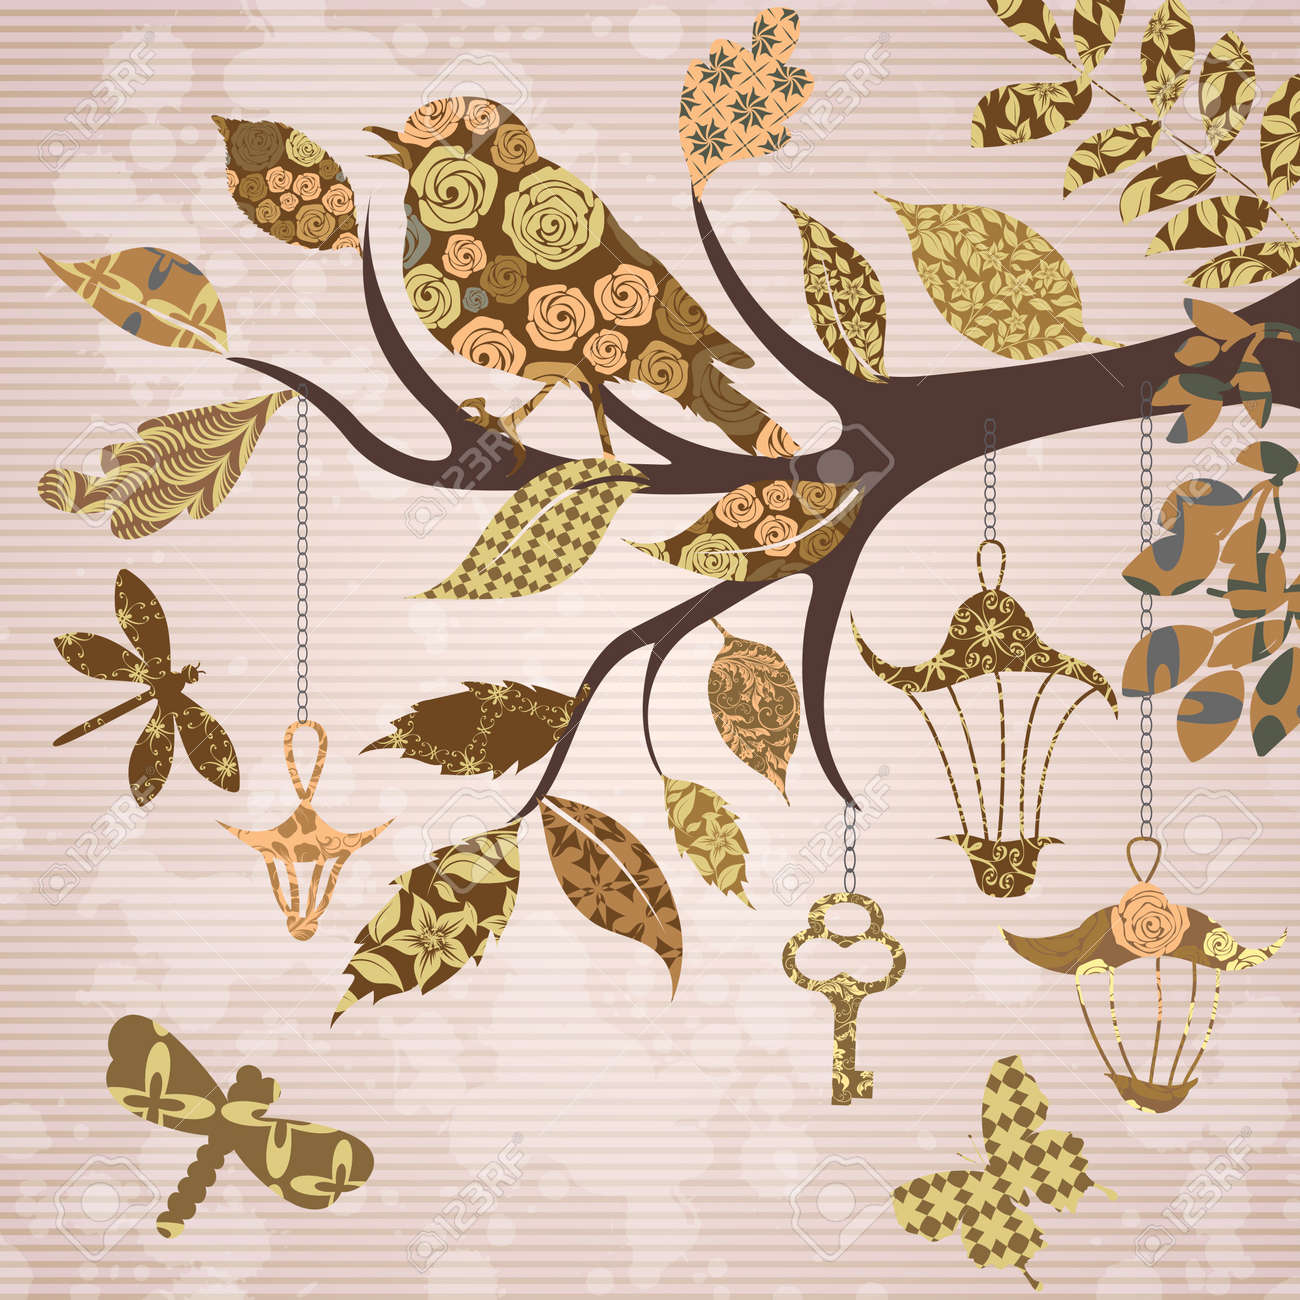 Scrap-booking background of tree branch - 17959228